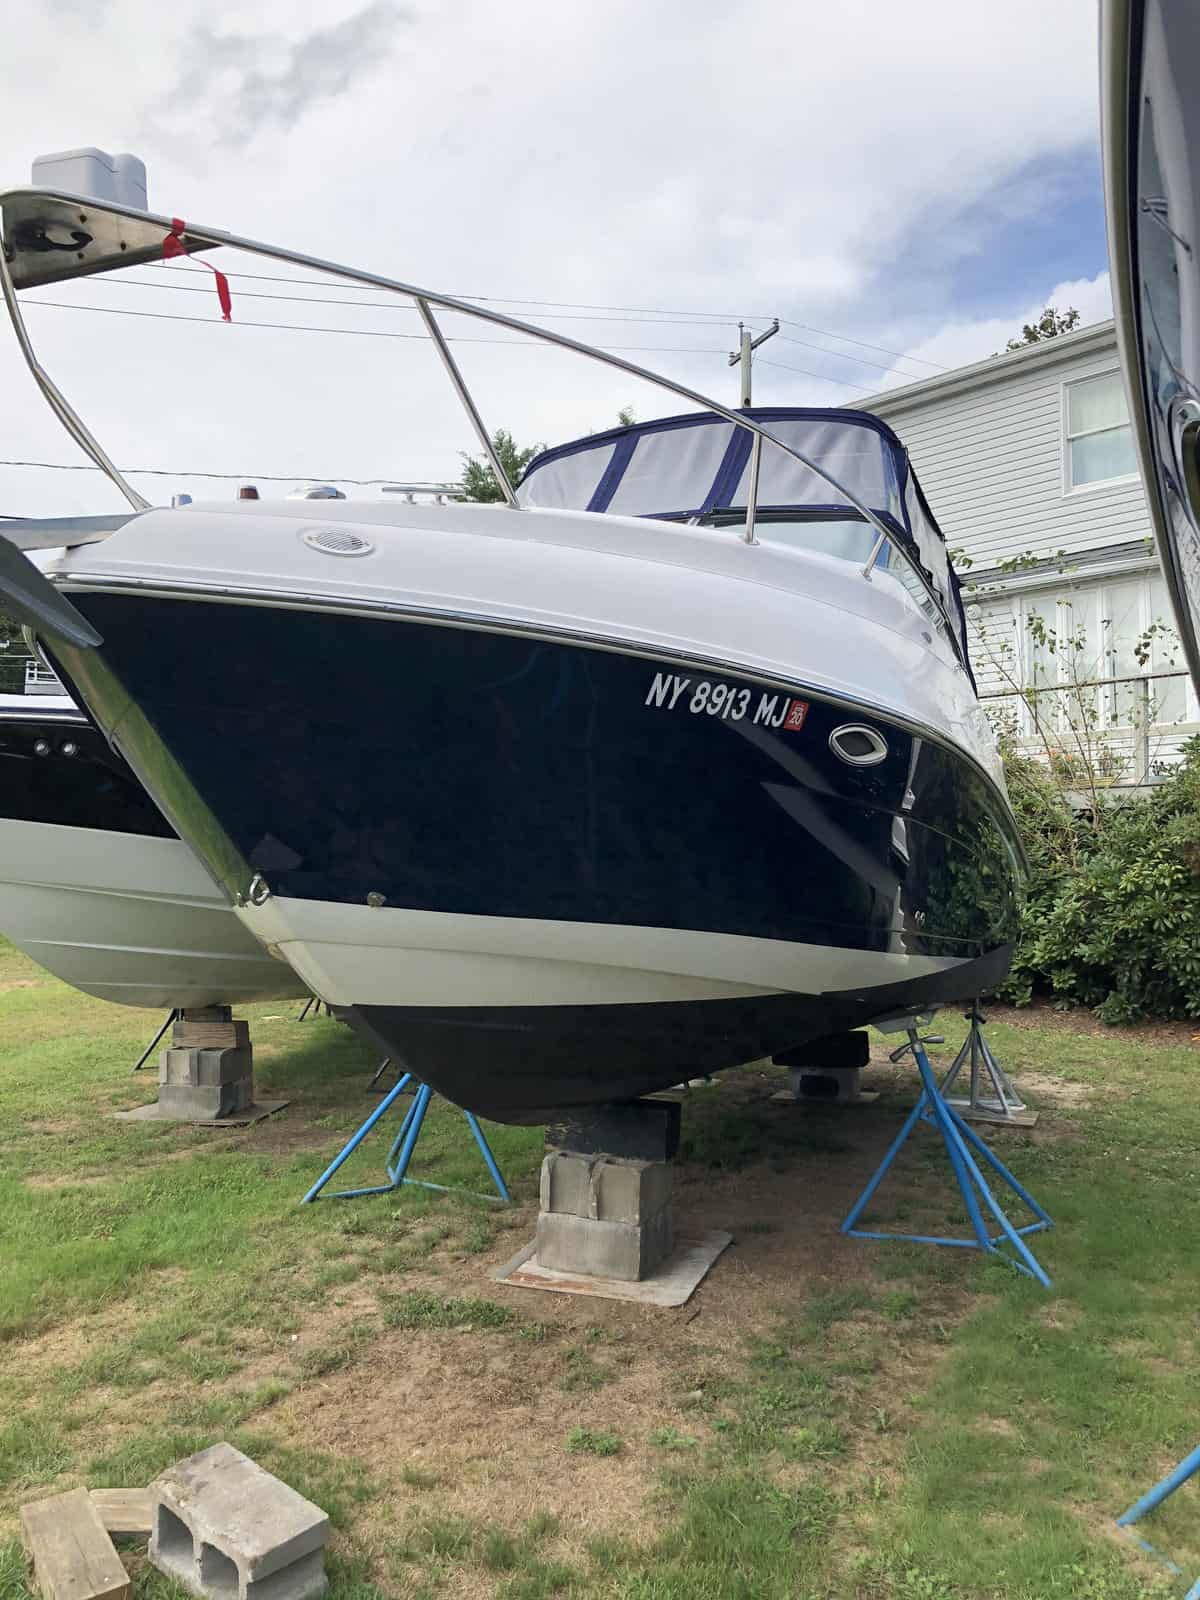 USED 2013 Glastron GS259 - Great Bay Marine